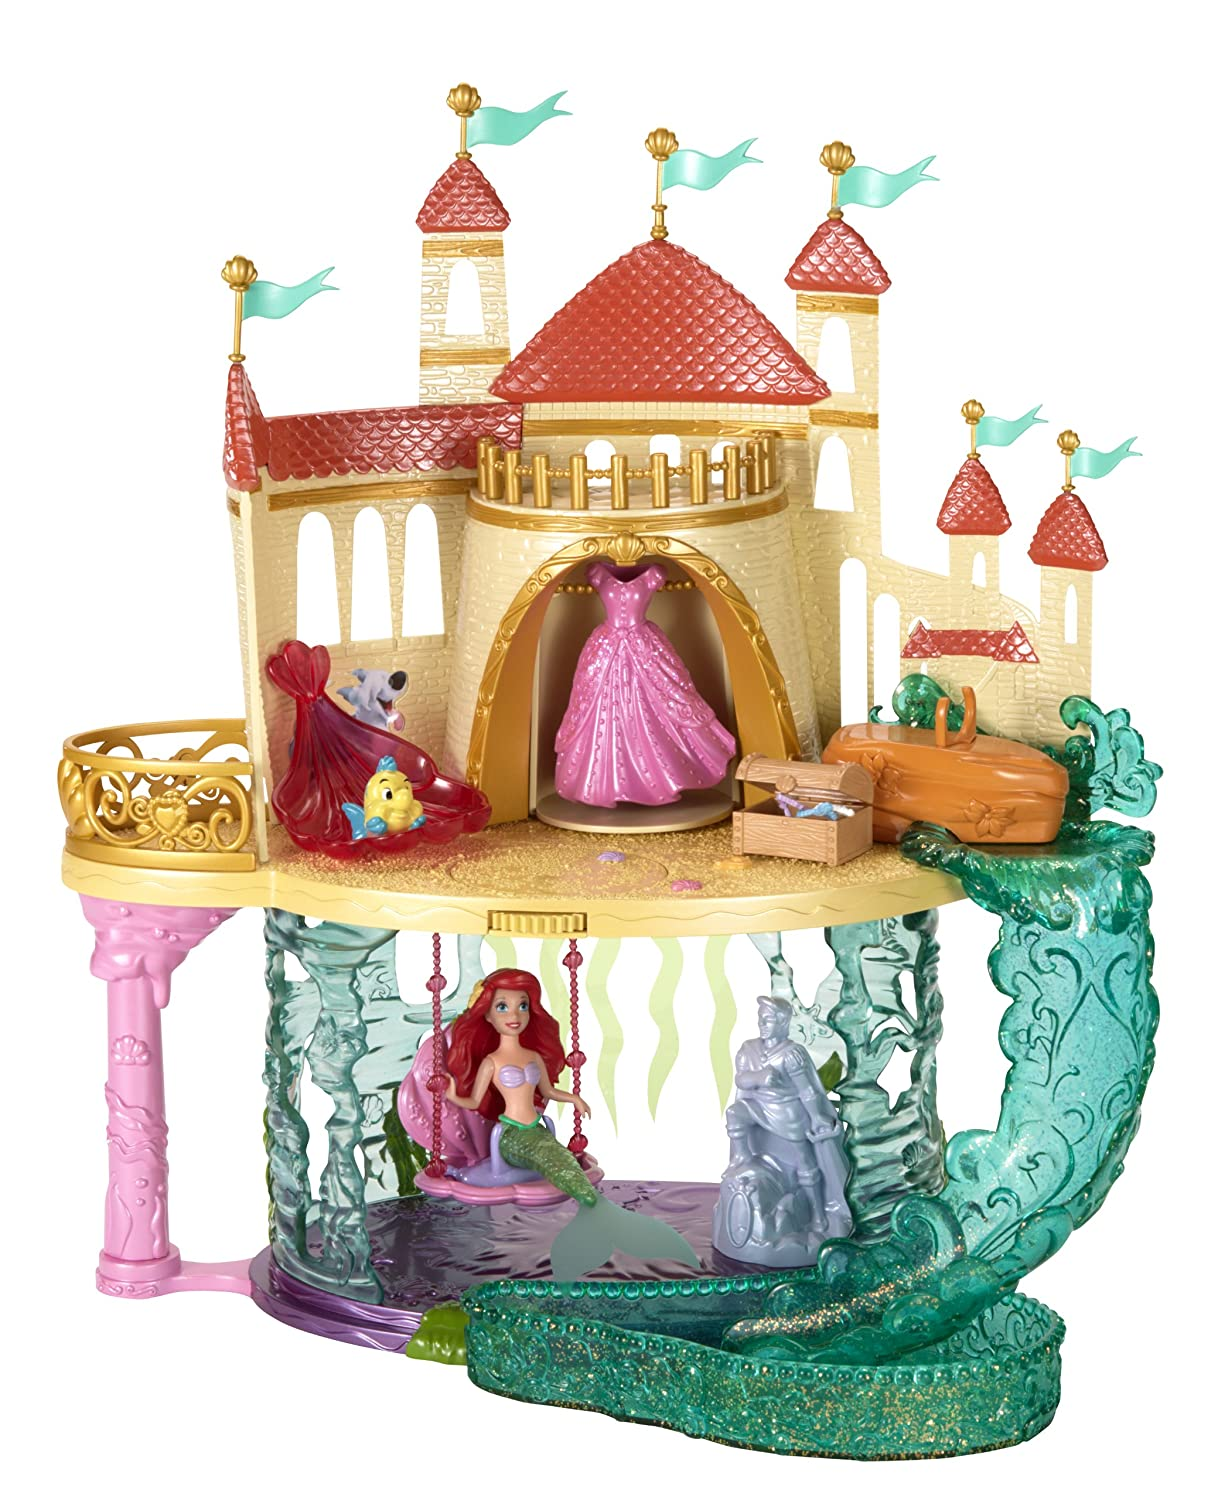 Little mermaid dolls and accessories